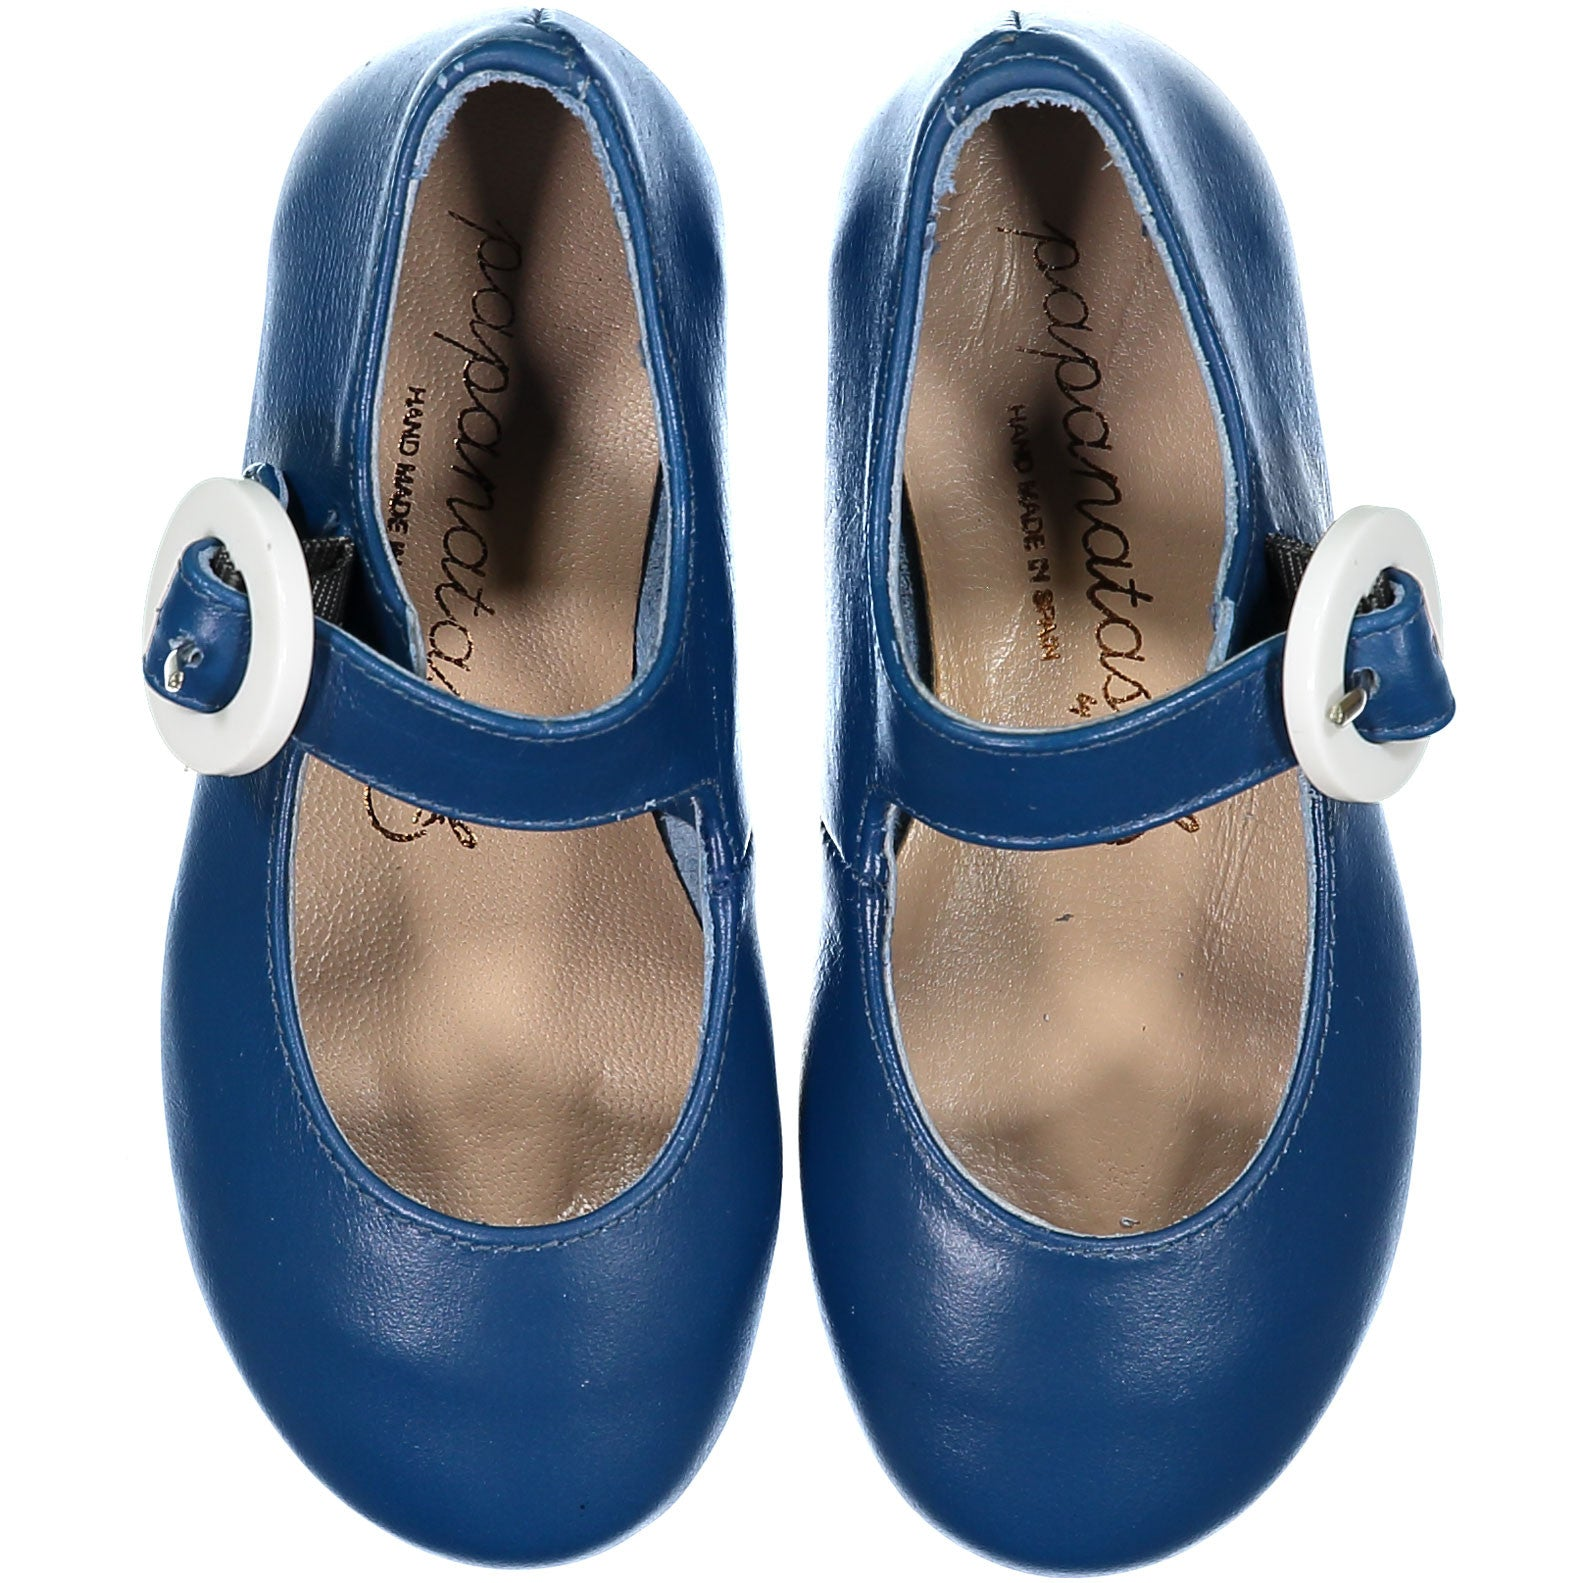 Papanatas Blue Buckle Mary Jan